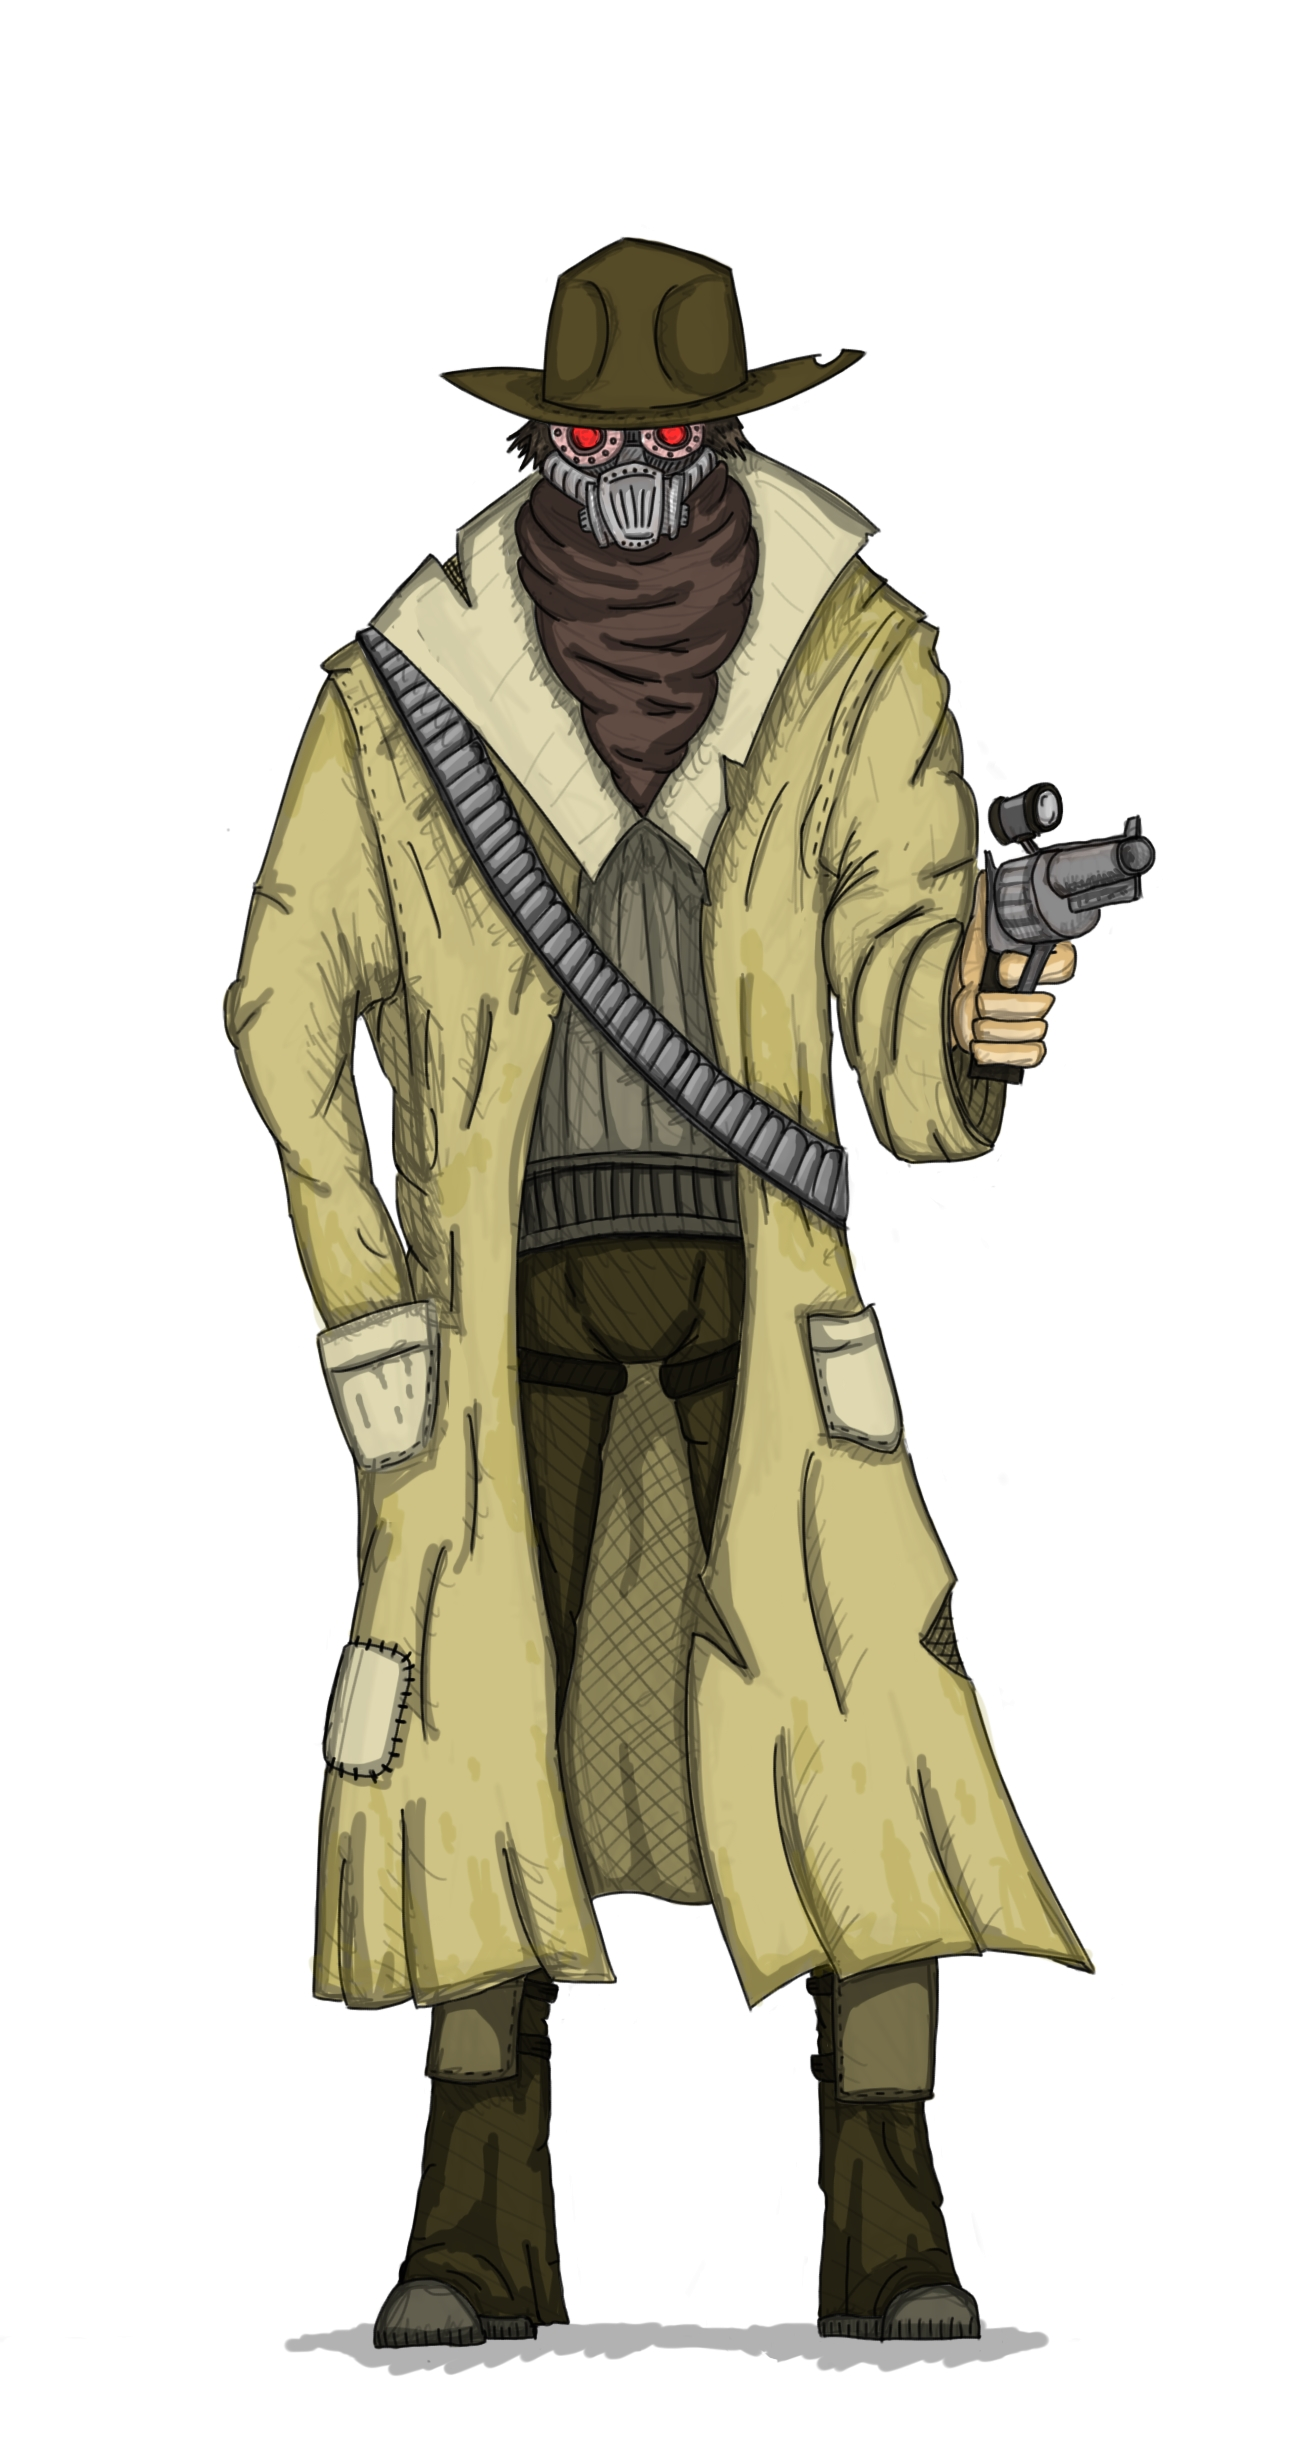 Trench (Fallout DnD)